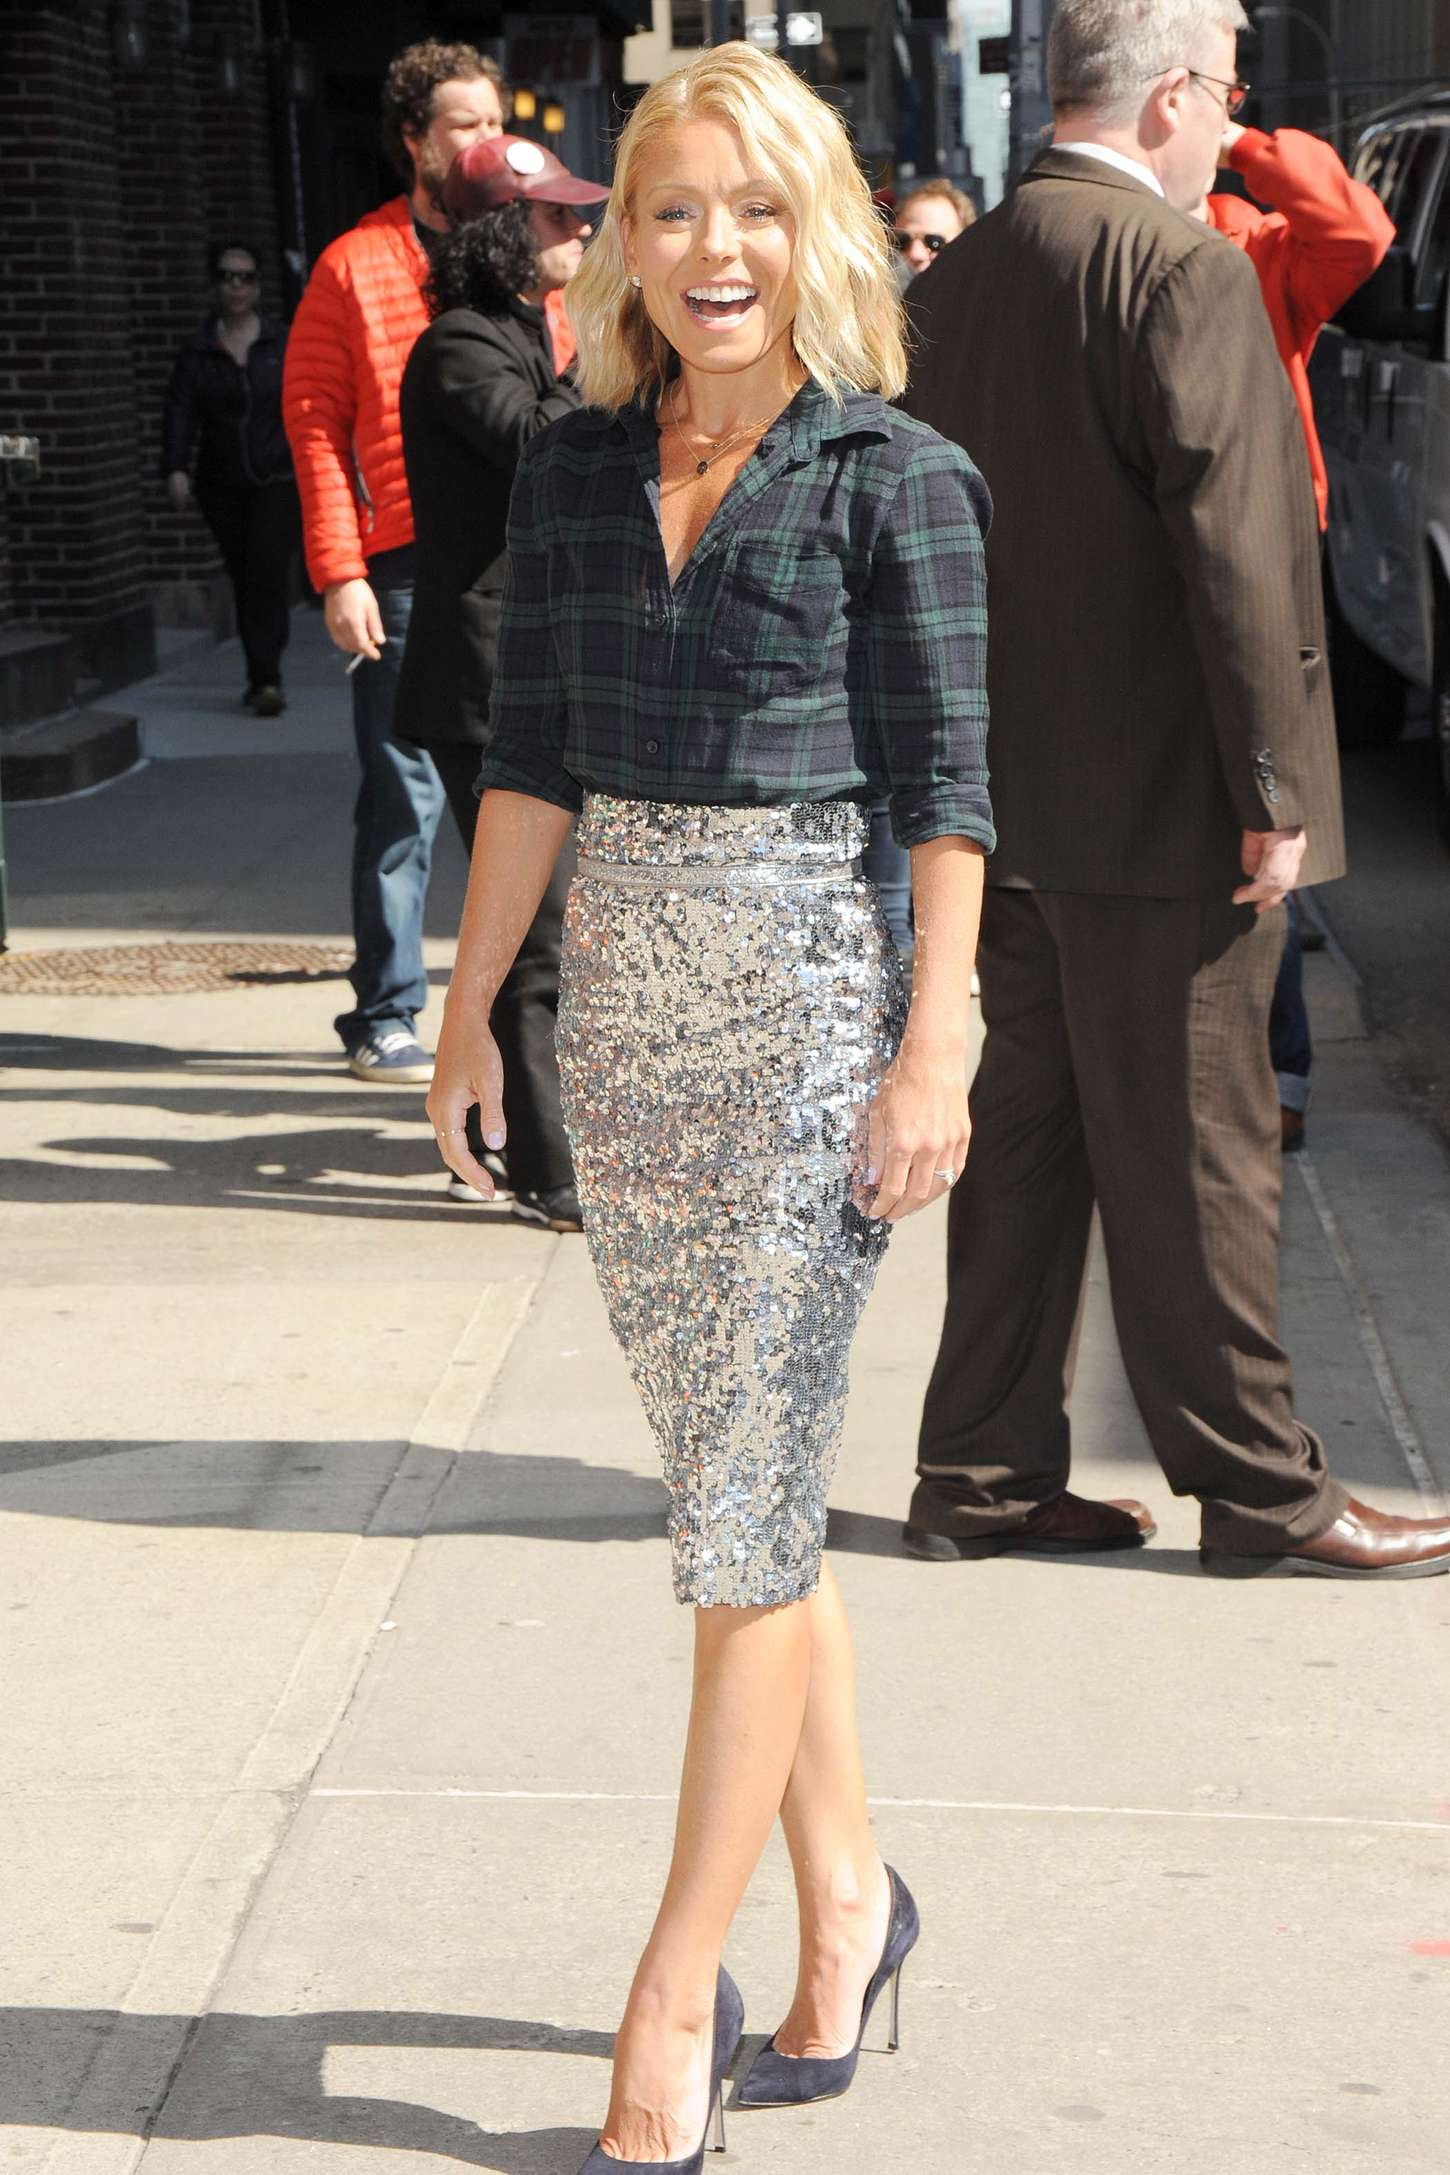 Kelly Ripa Arriving at The Late Show with David Letterman in New York